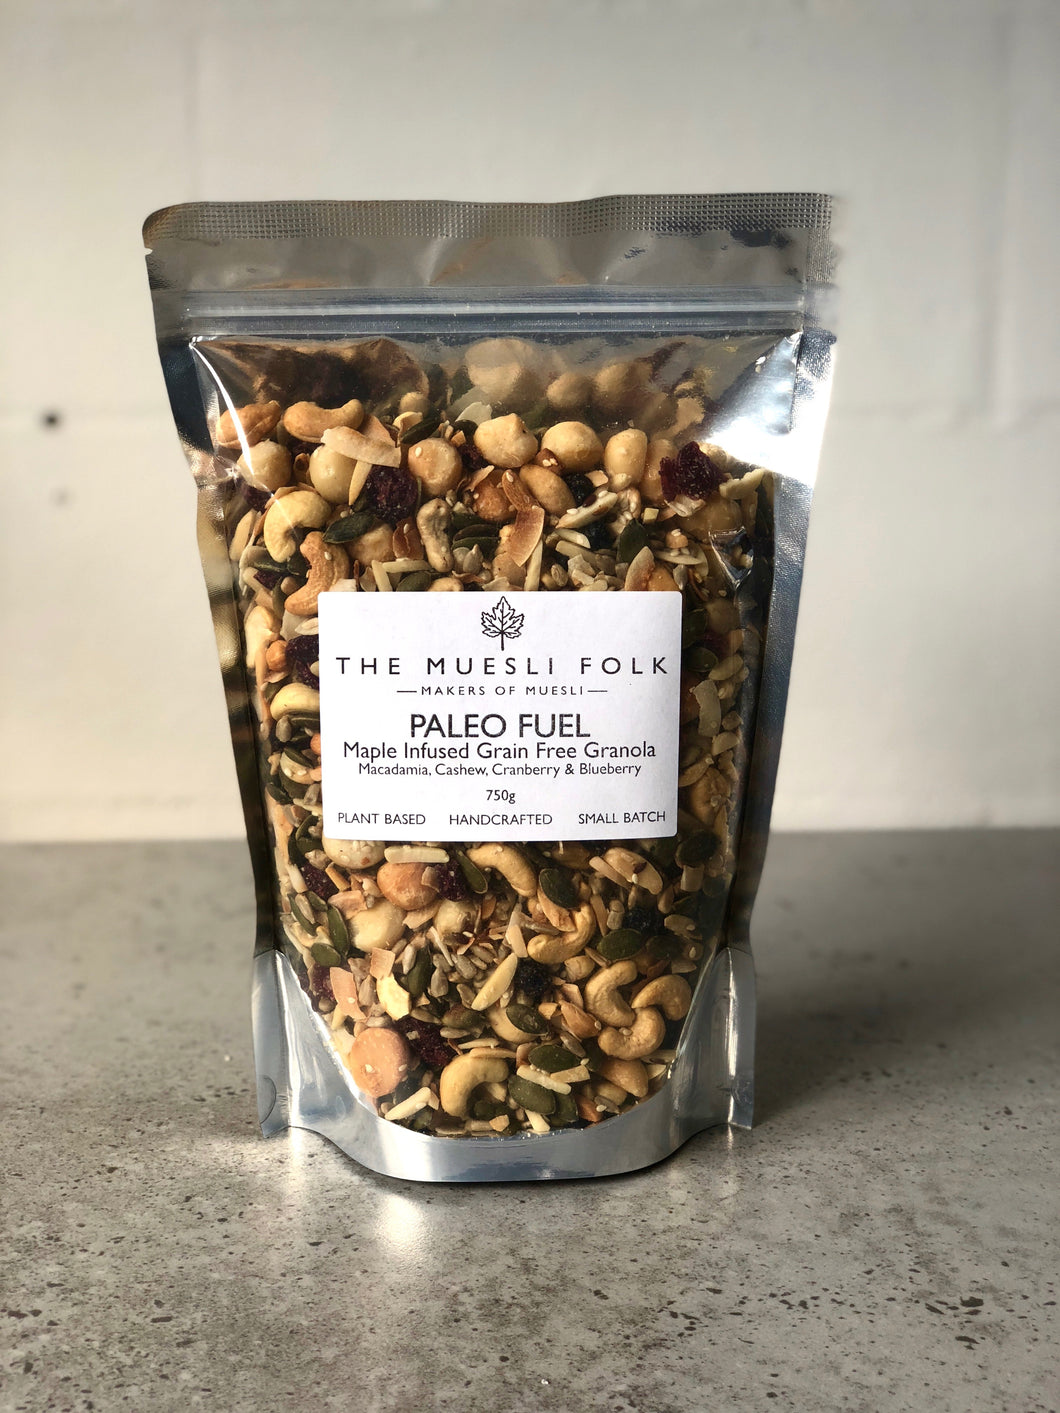 Paleo Fuel - The Muesli Folk